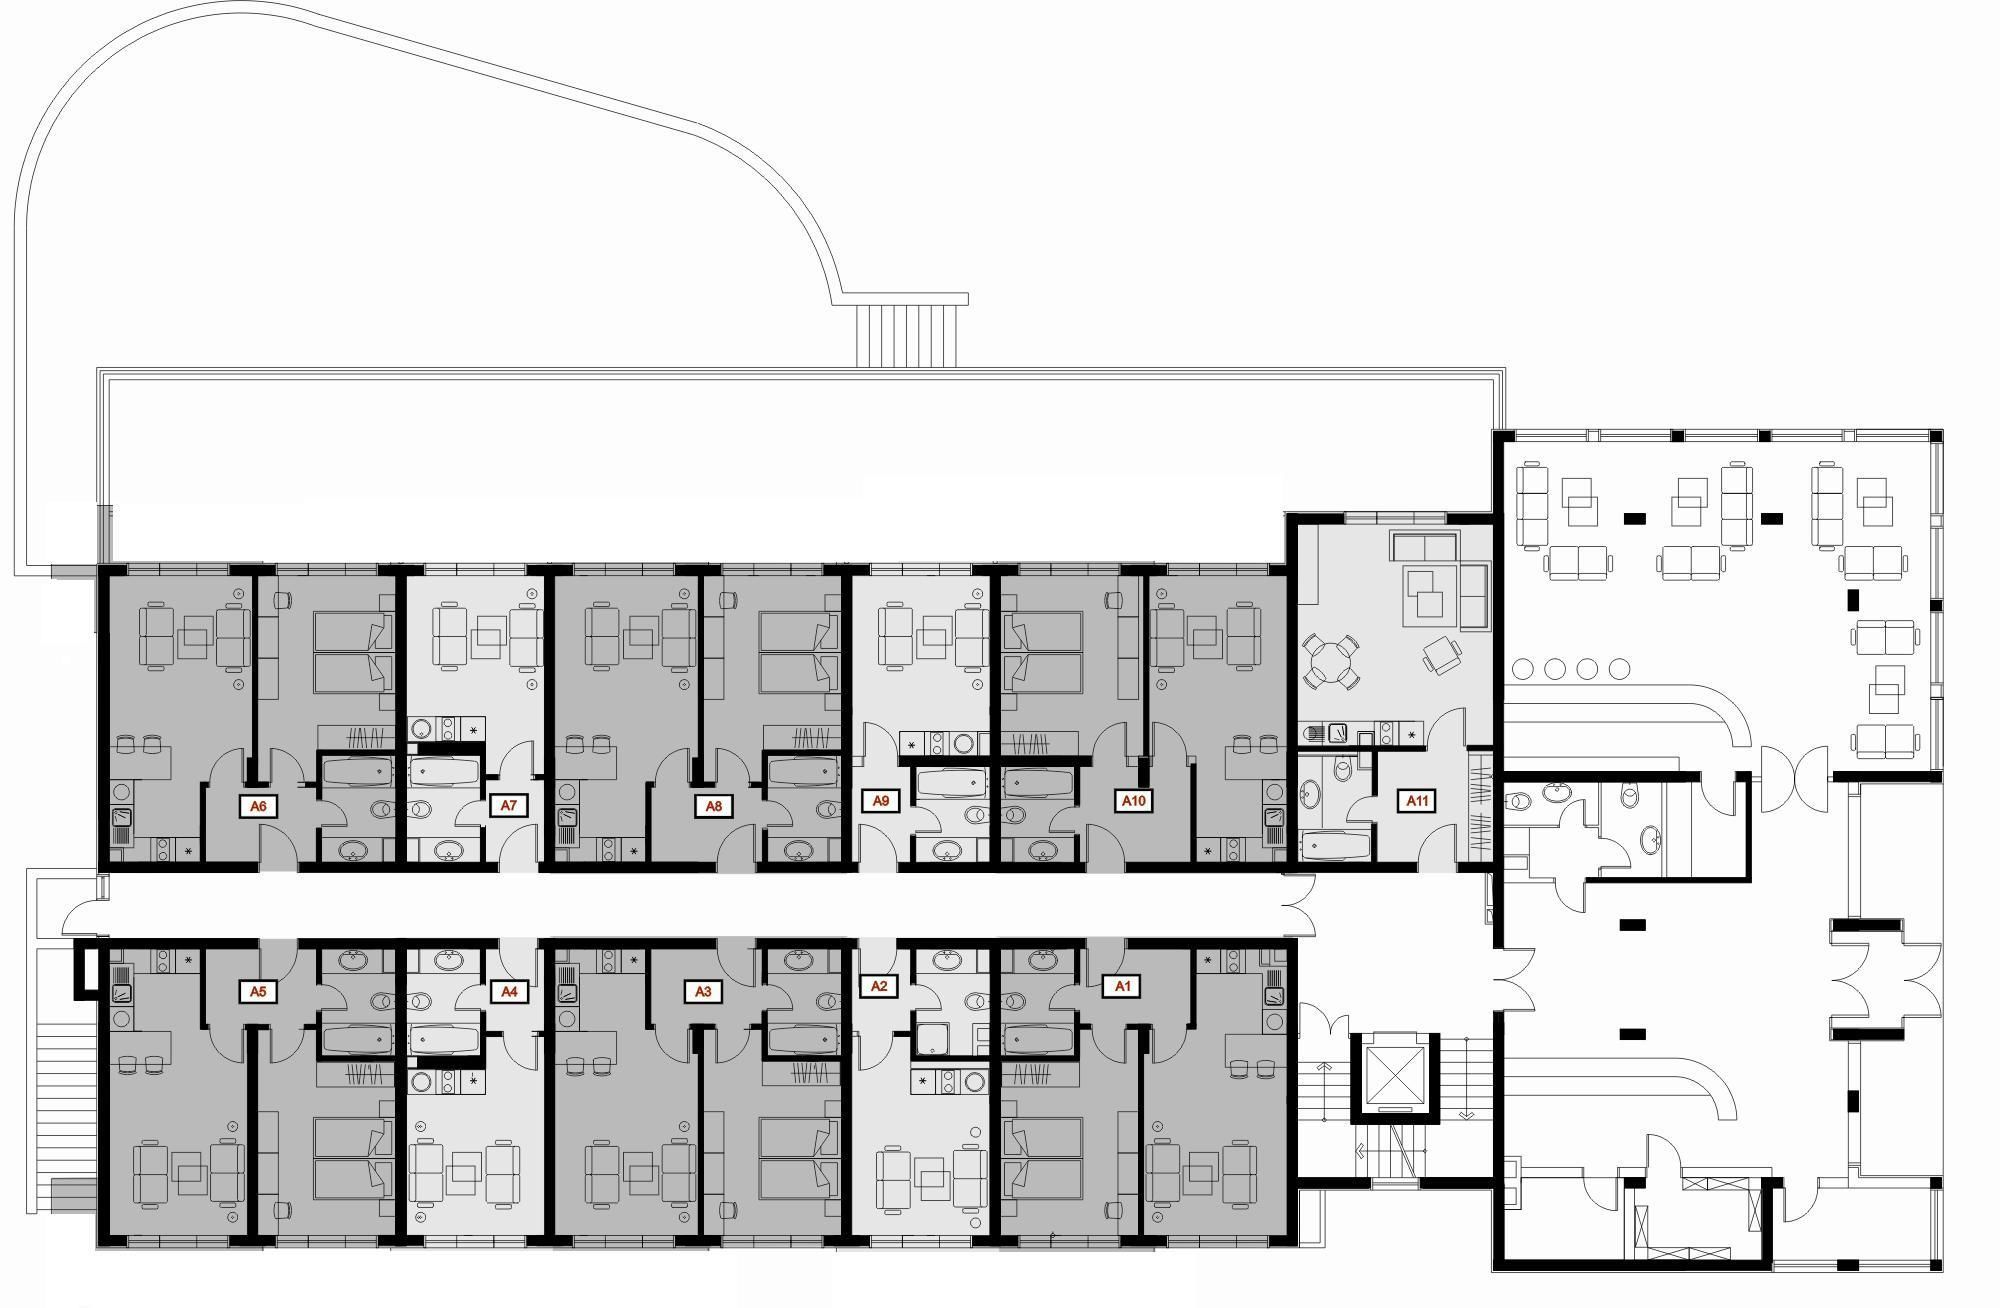 20 Pics Review Small Hotel Floor Plans Pdf And Descrition Hotel Floor Plan Boutique Hotel Lobby Hotel Lobby Design